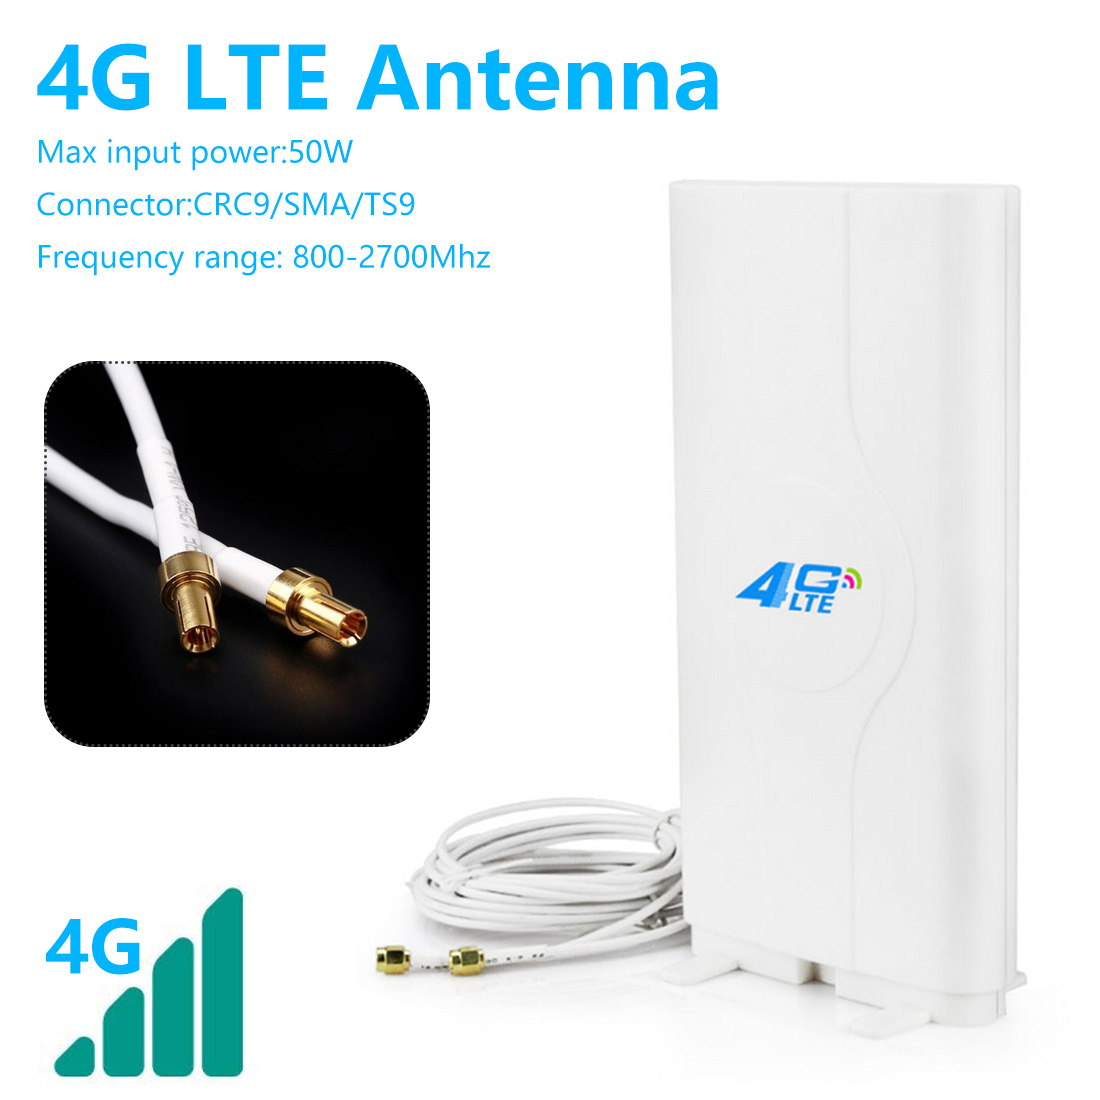 4G LTE Antenna External SMA-M Outdoor Antenna With 10m And SMA-F To CRC9/TS9/SMA Connector For 3G 4G Router Modem